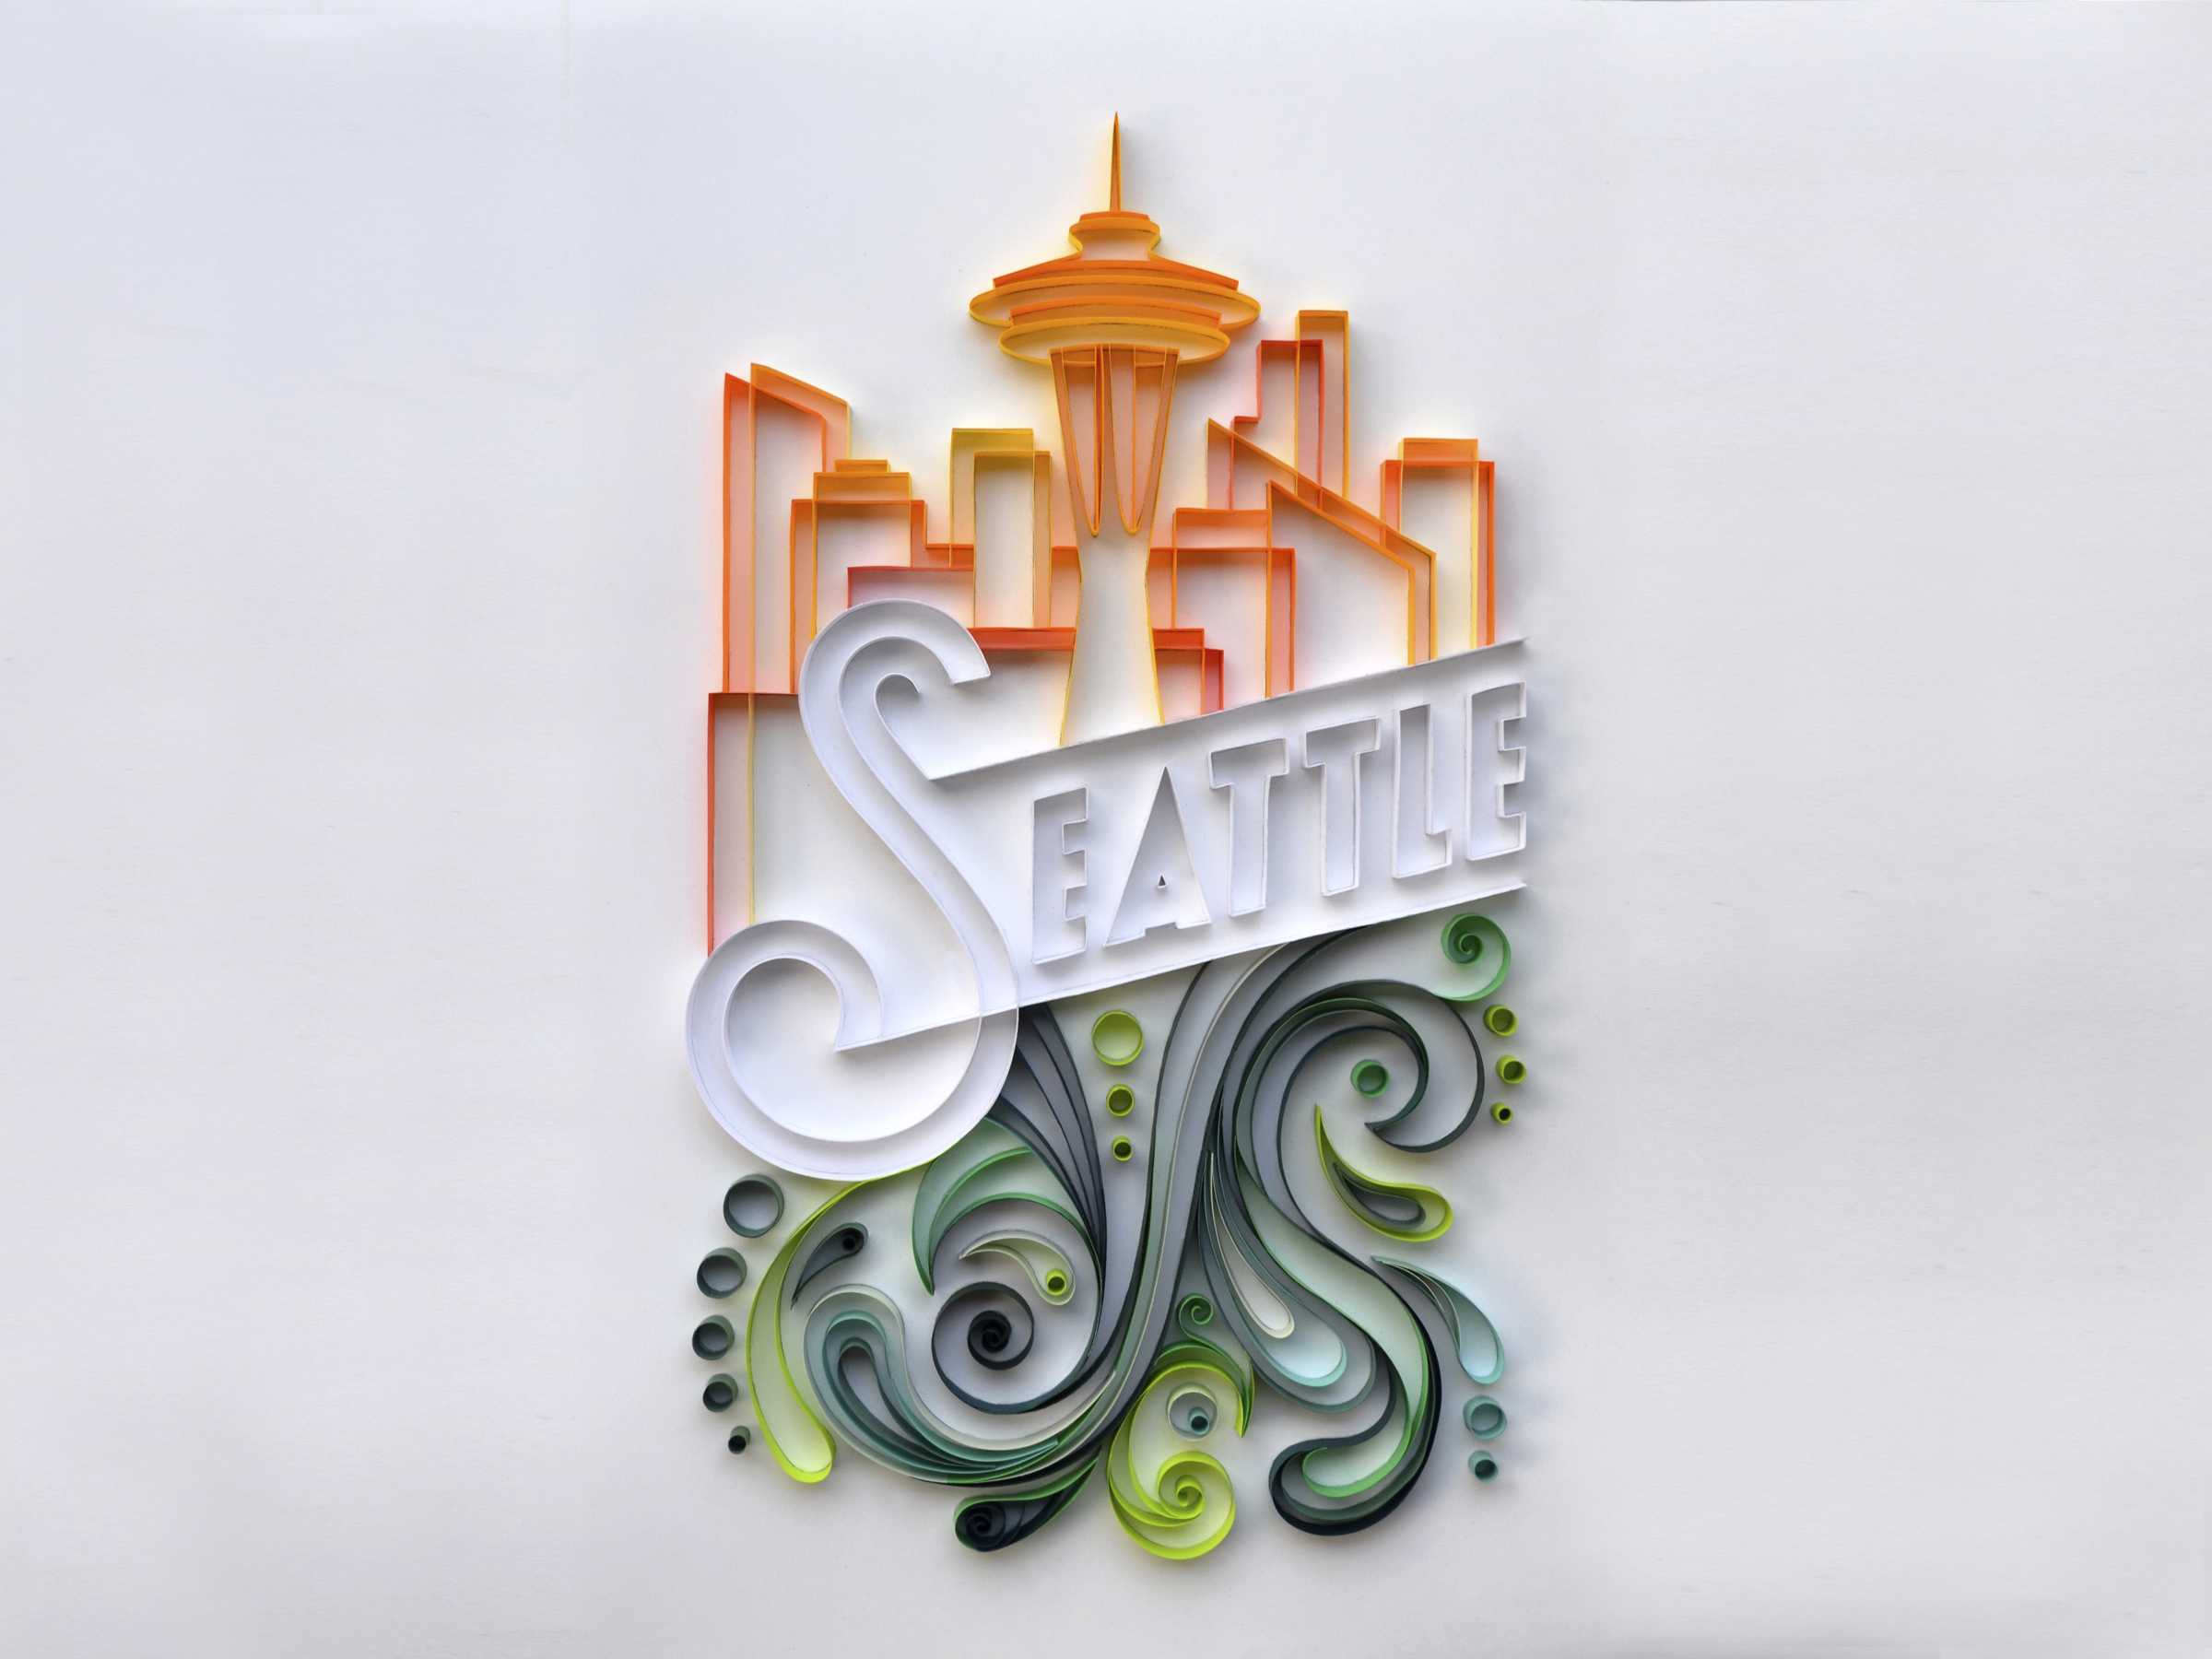 Seattle Quilling